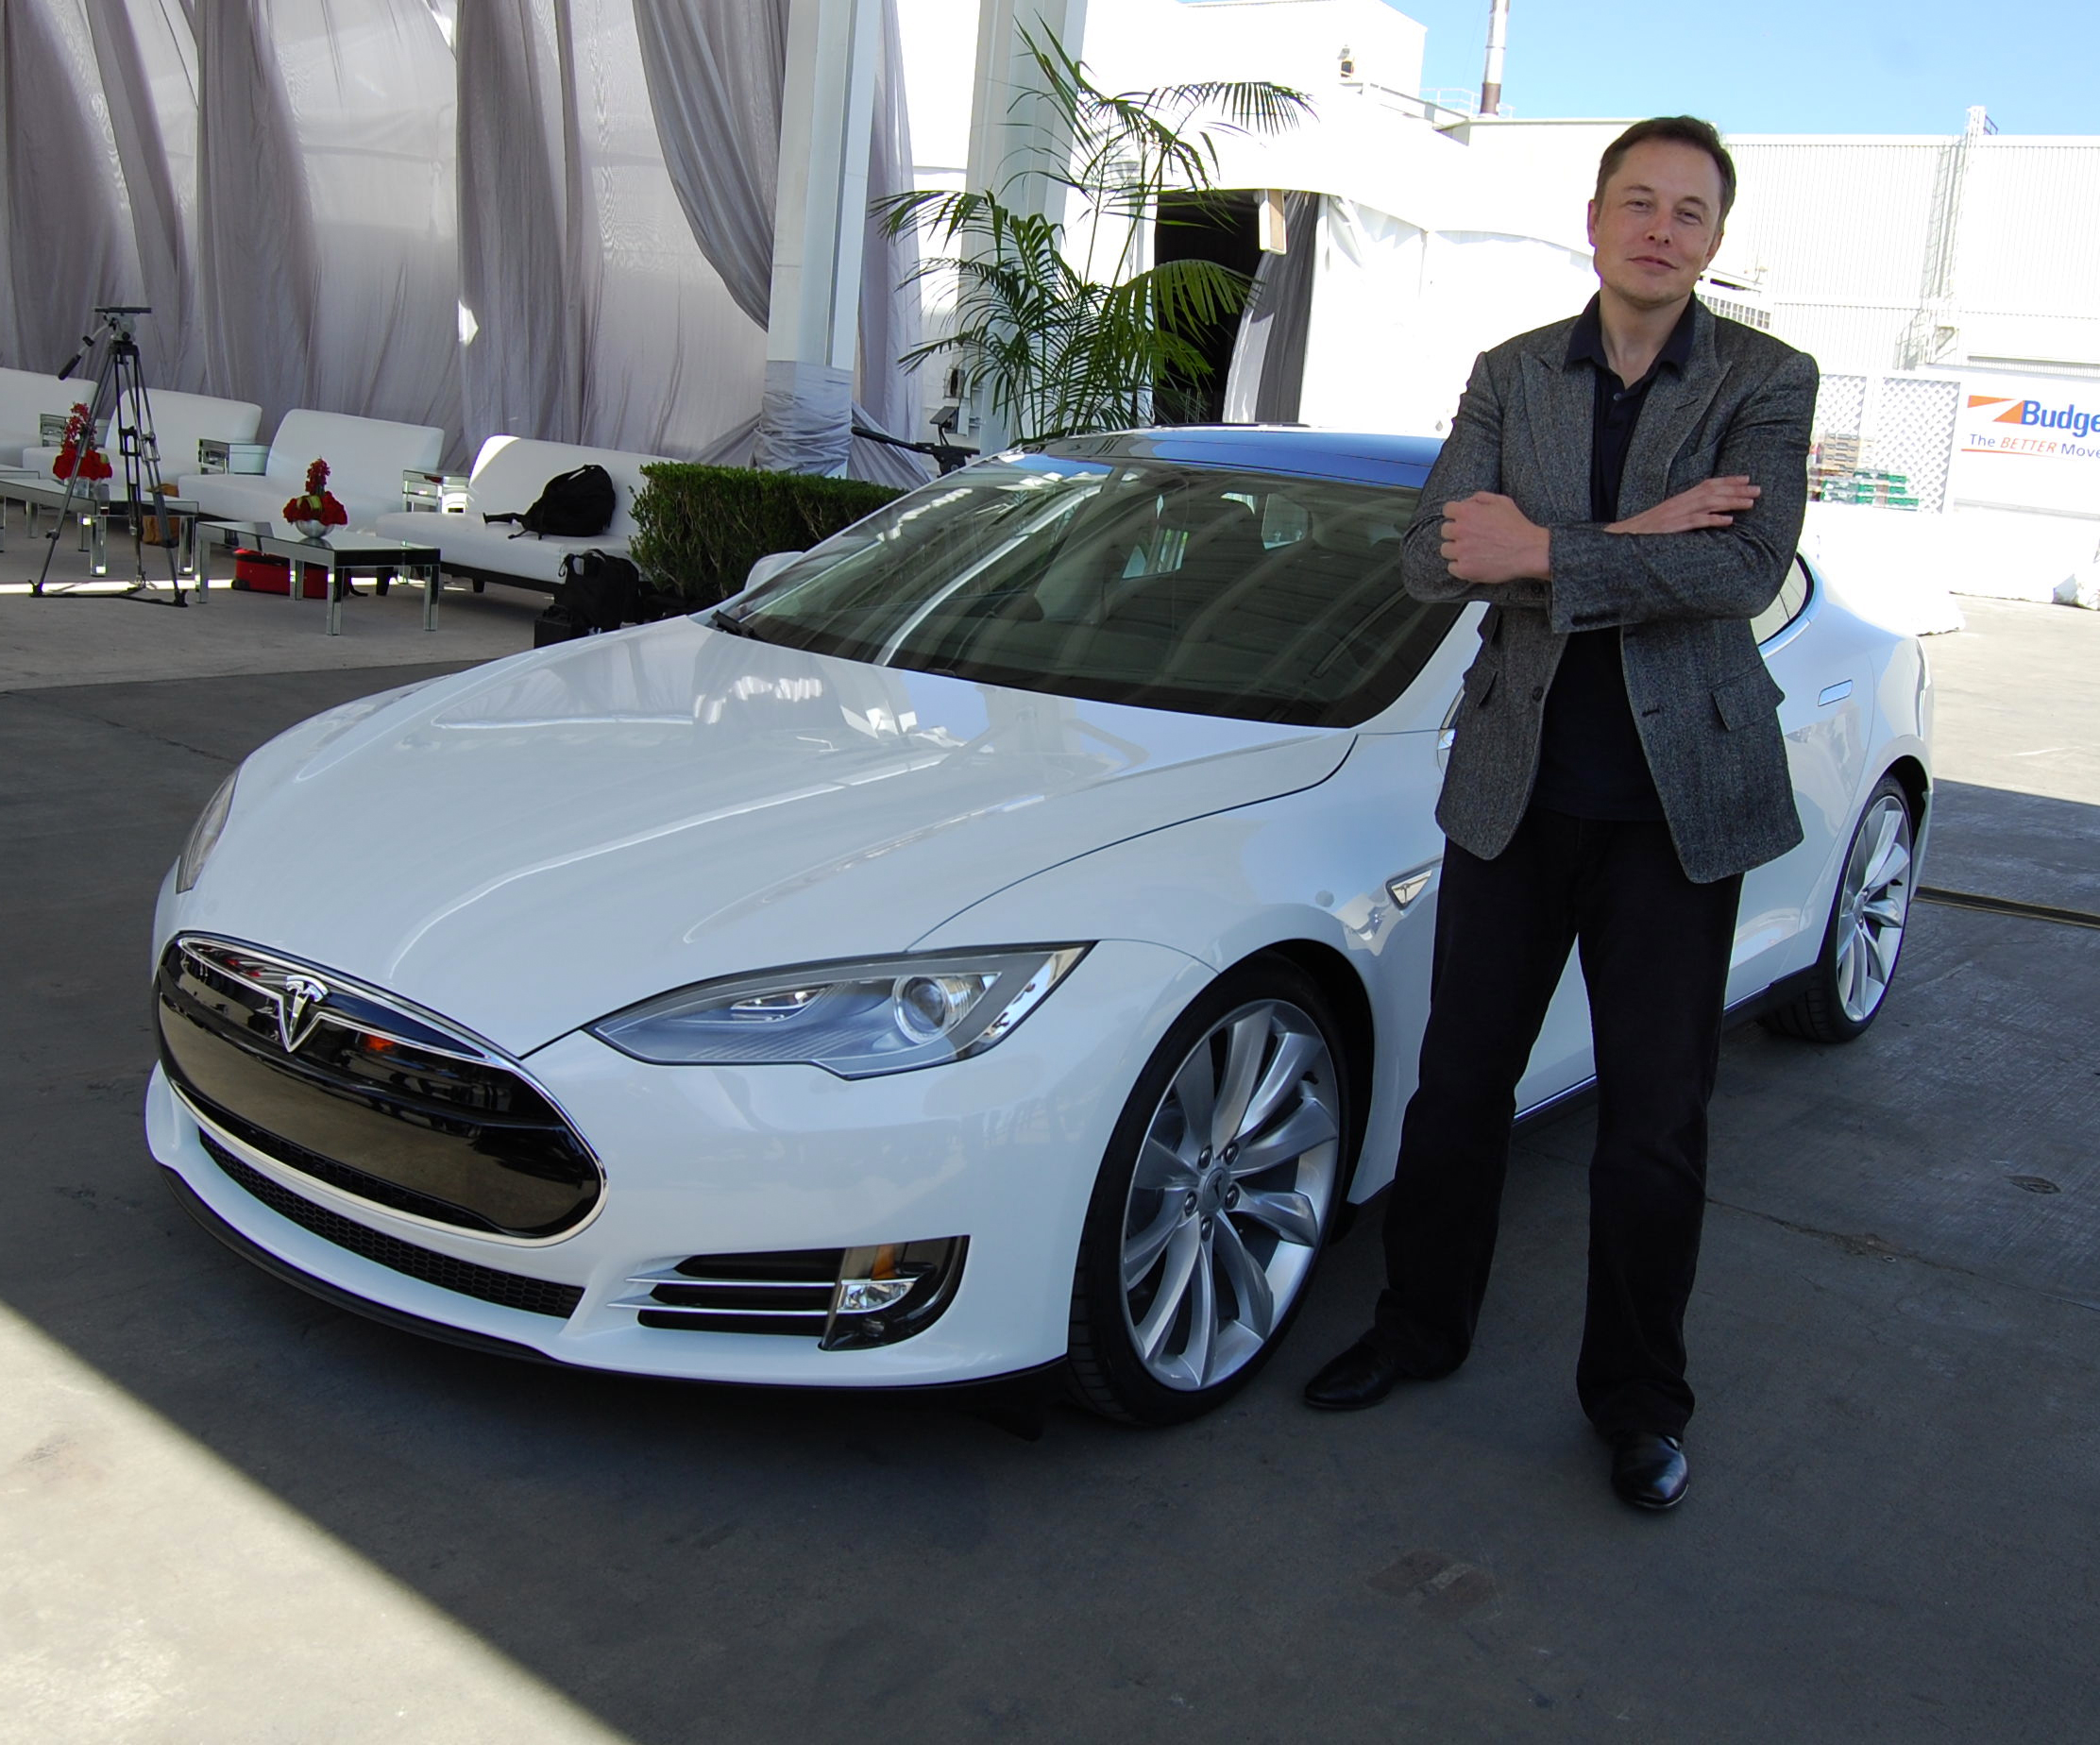 Making a statement? 'Somewhat libertarian' Elon Musk just blew up